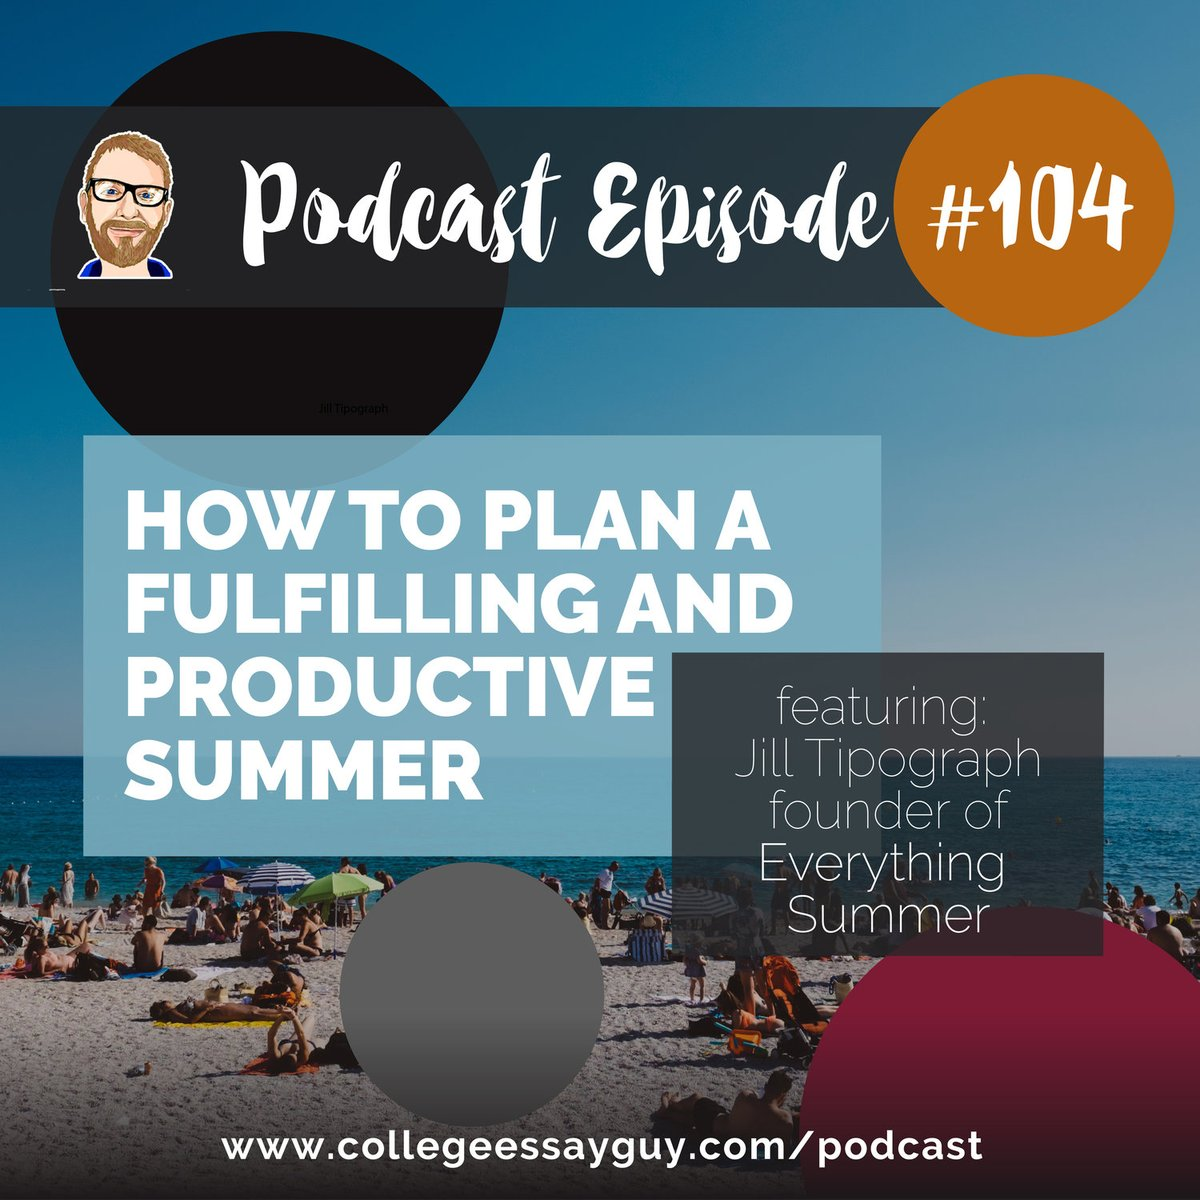 """Summer may feel like an eternity away, but for those of you who like to plan things in advance, here's a podcast episode and guide for you:  CEG Podcast, Episode 104: """"How to Plan a Fulfilling and Productive Summer"""" (featuring Jill Tipograph)  🎧 Listen: goo.gl/yhbNaJ"""